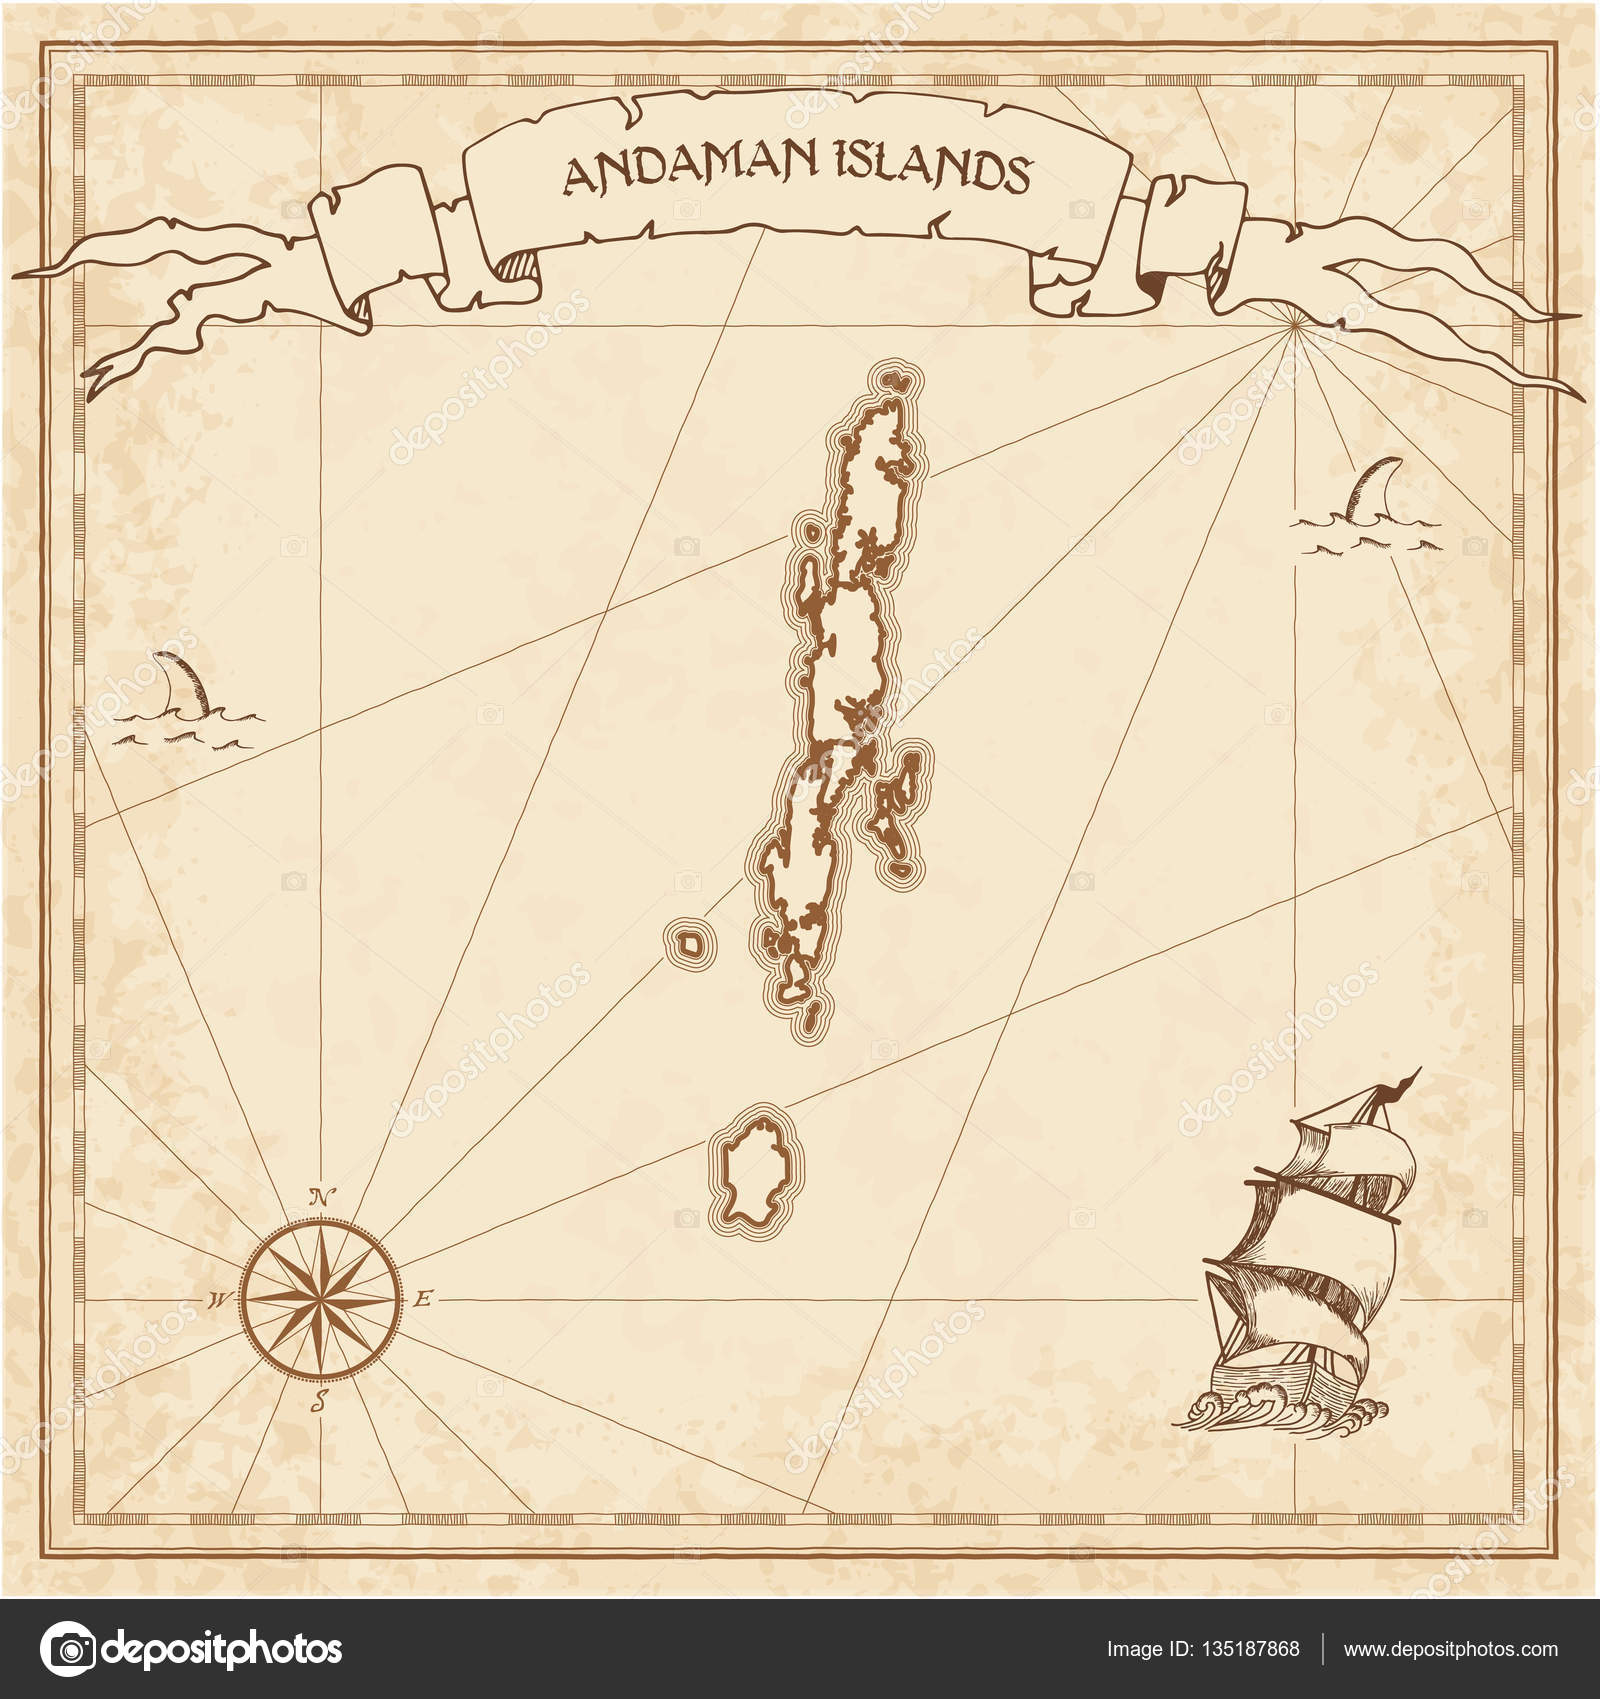 Andaman Islands Old Treasure Map Sepia Engraved Template Of Pirate